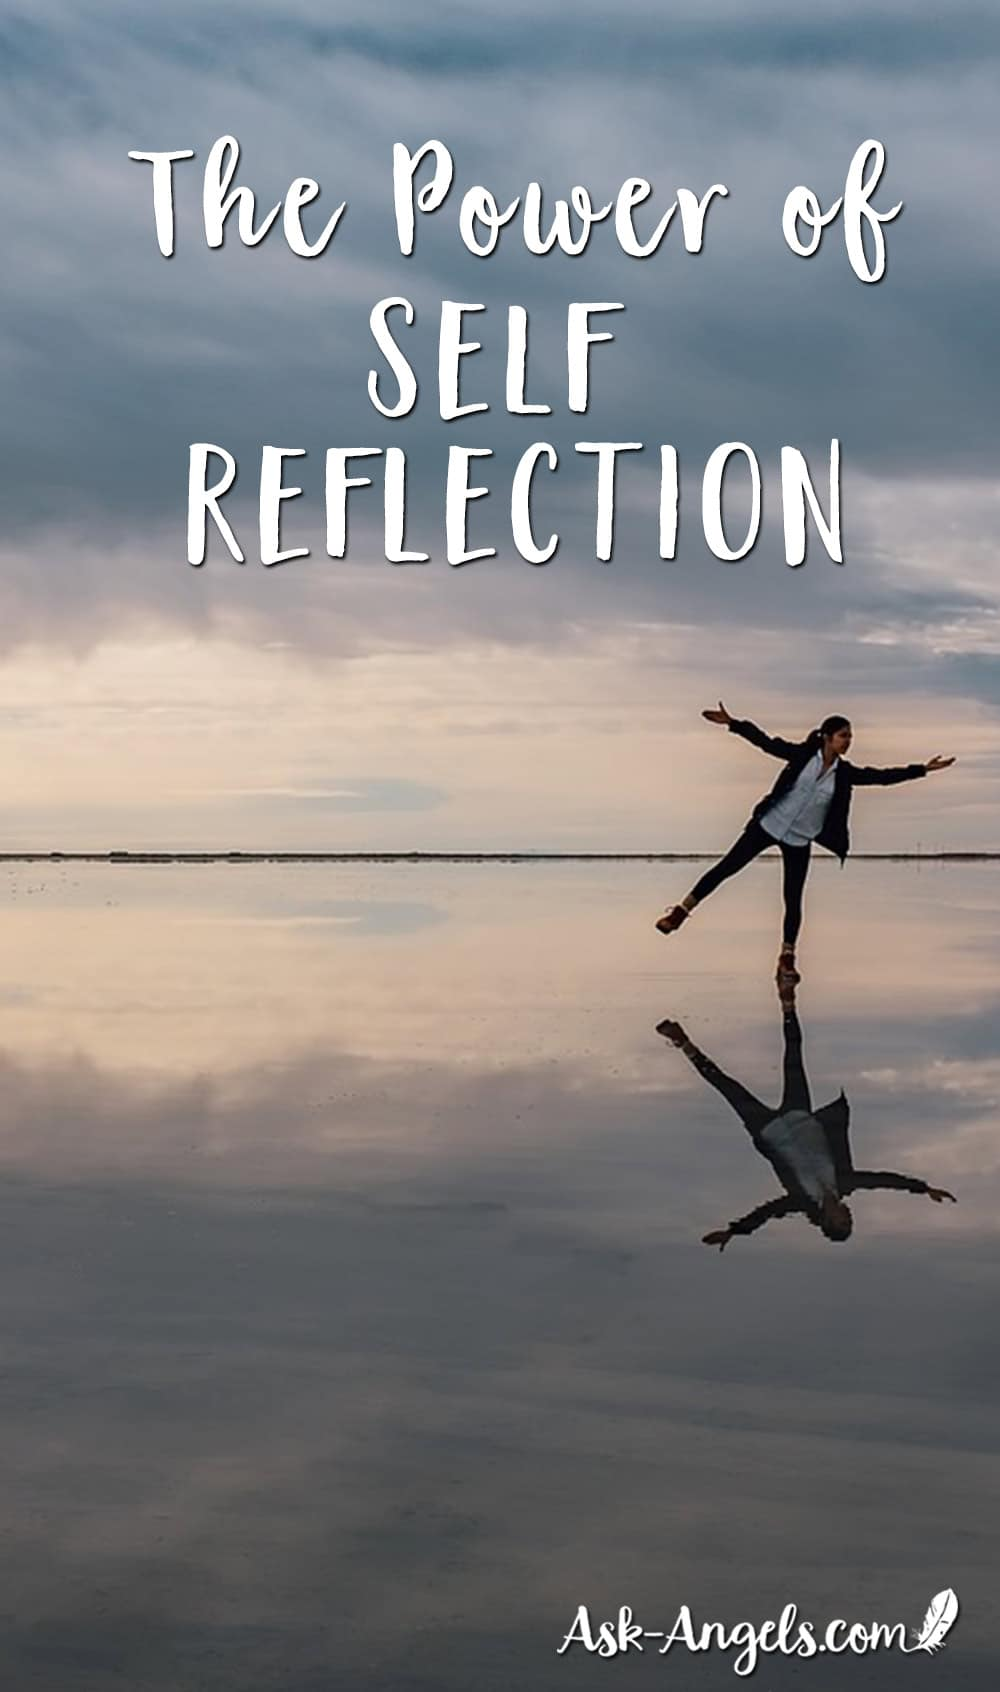 The Power of Self Reflection